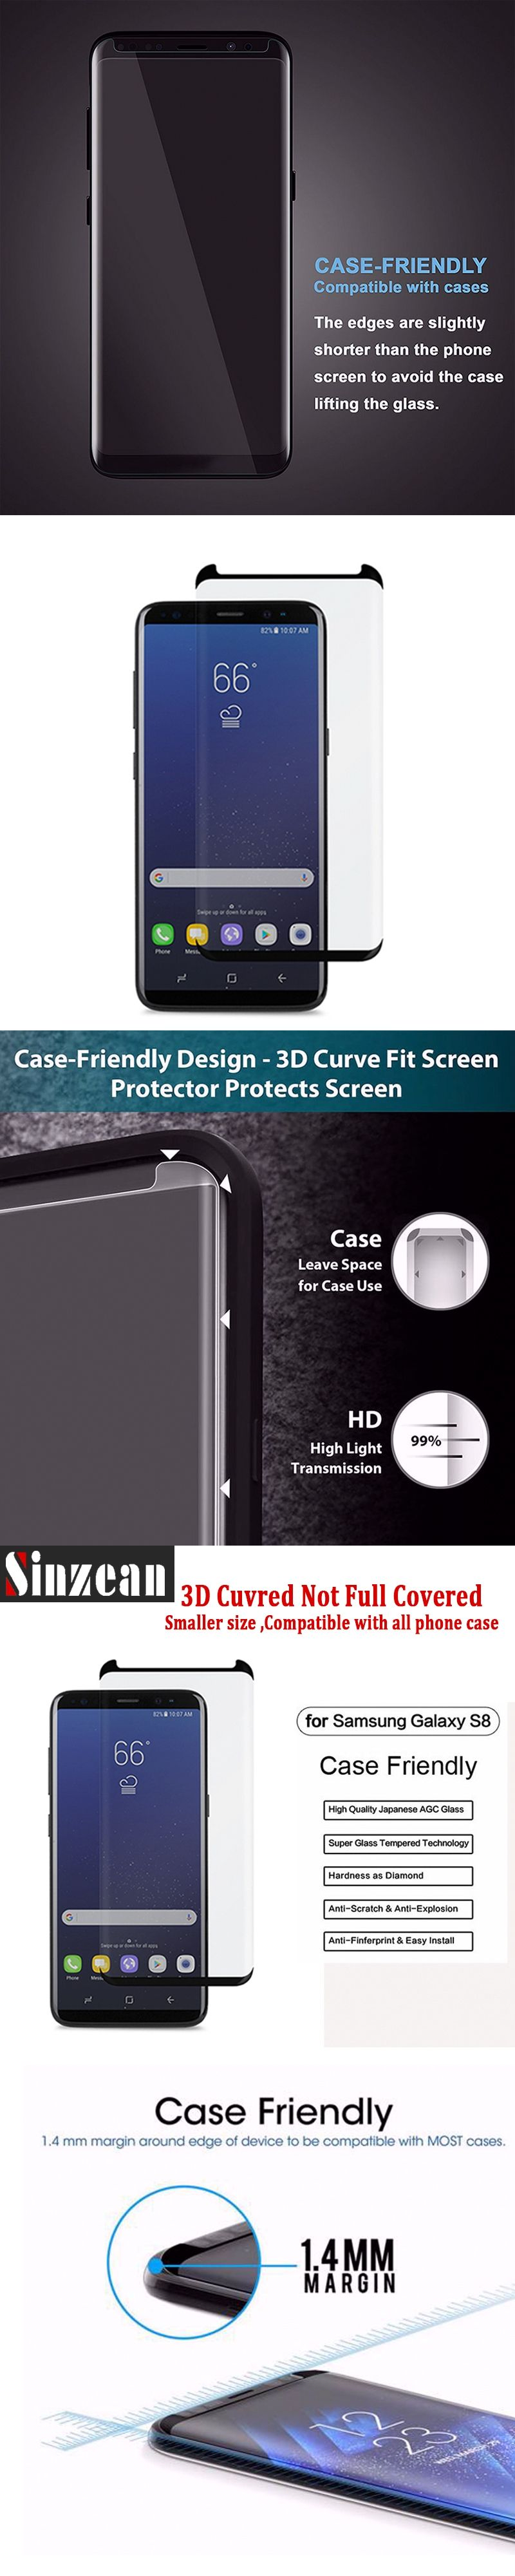 Sinzean 3D Curved Case friendly Not Full Cover For Samsung Galaxy S8 S8